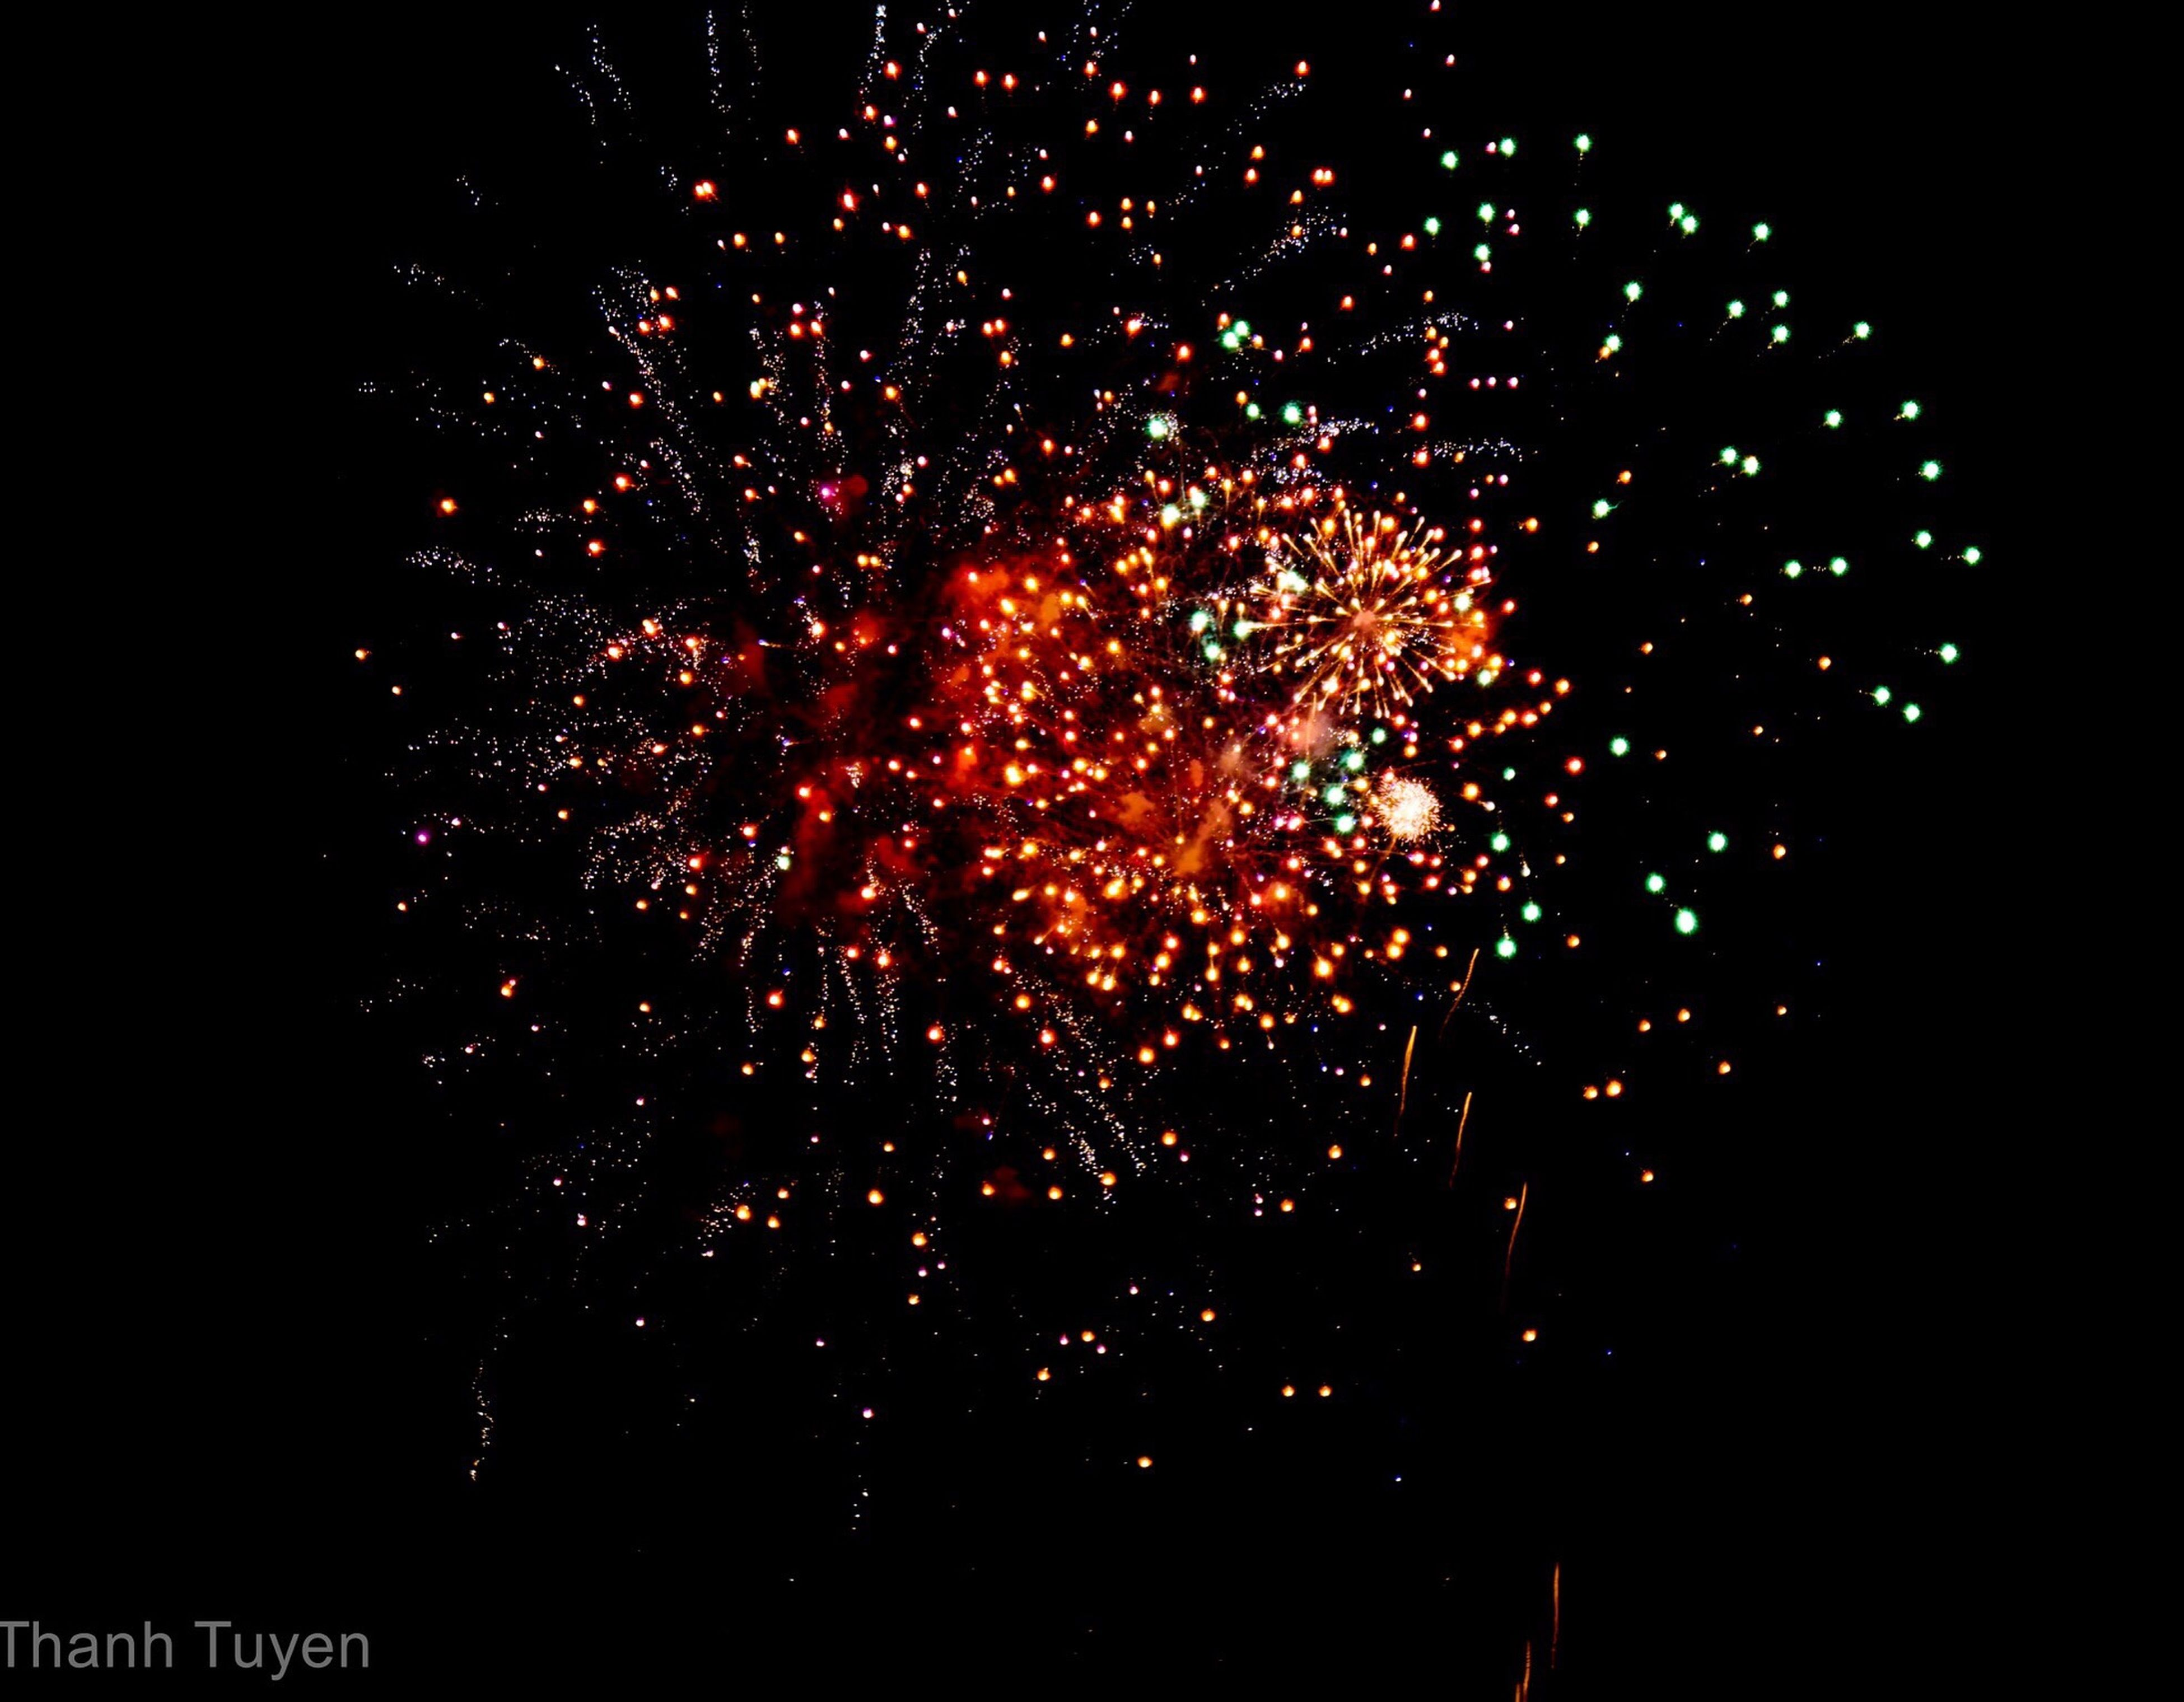 motion, celebration, firework display, long exposure, exploding, glowing, arts culture and entertainment, night, low angle view, firework - man made object, sparks, sky, entertainment, event, blurred motion, illuminated, multi colored, outdoors, vibrant color, red, no people